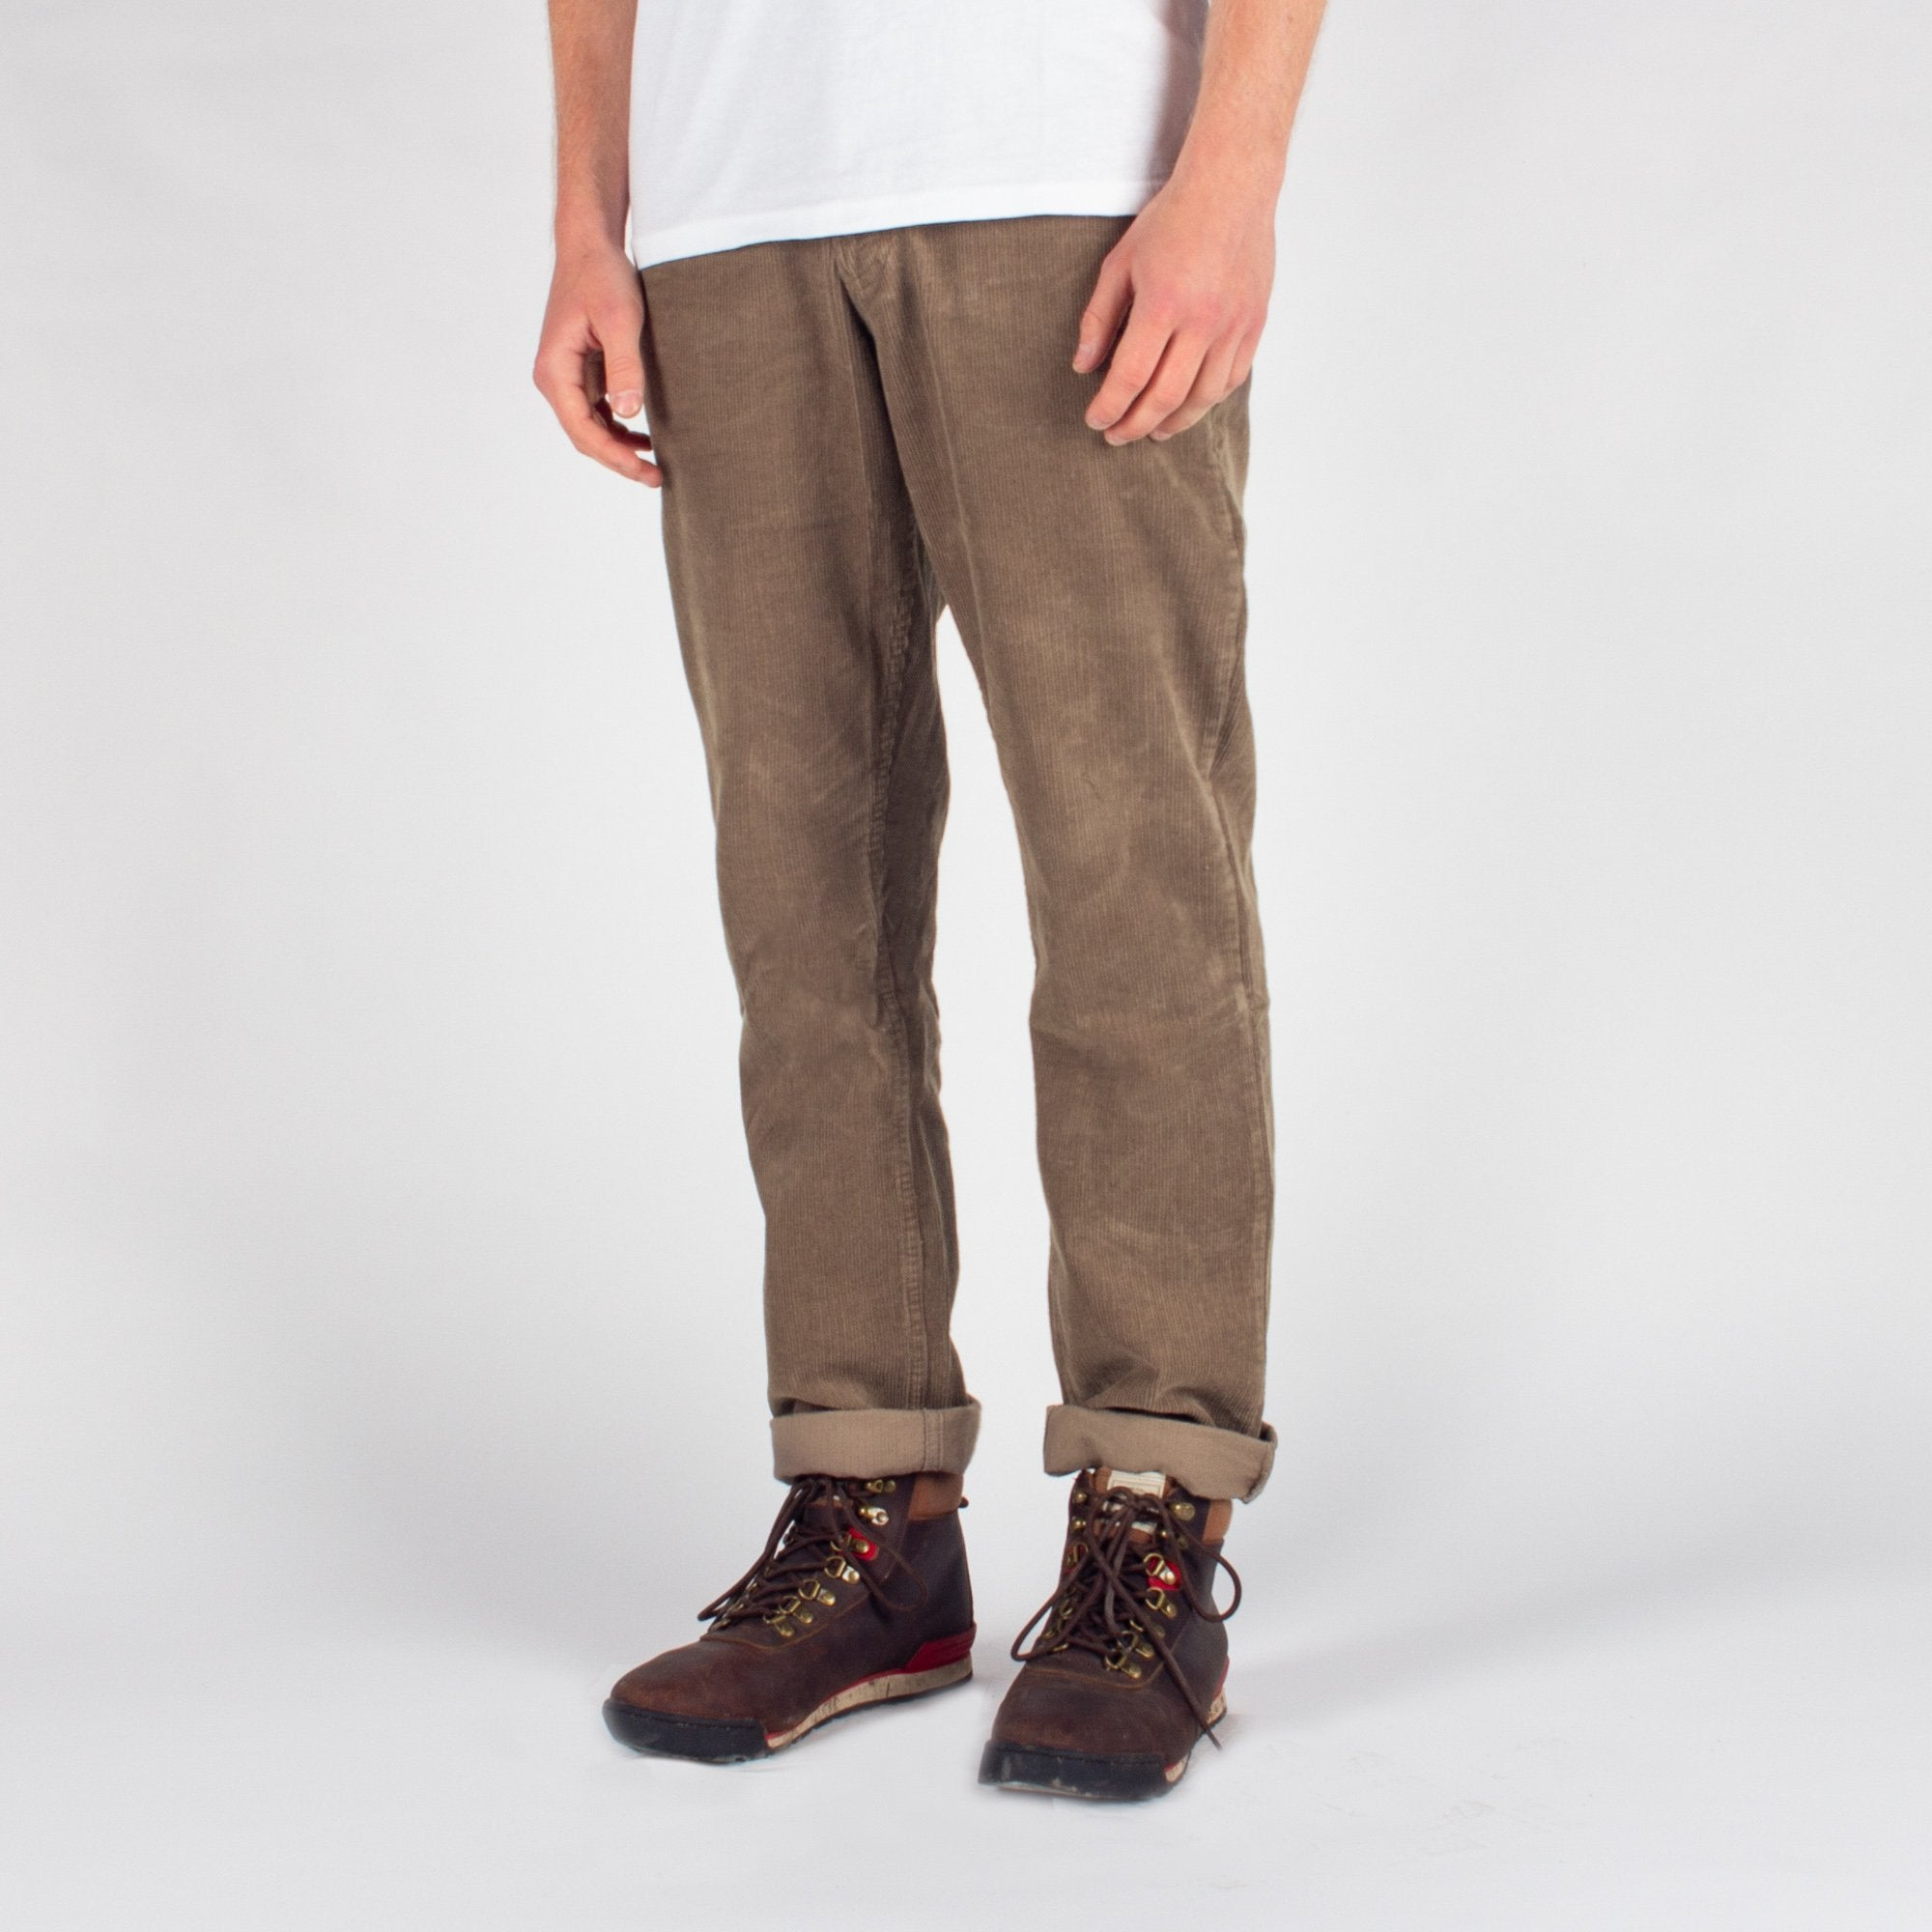 Daily Cord Trousers - Tan image 4